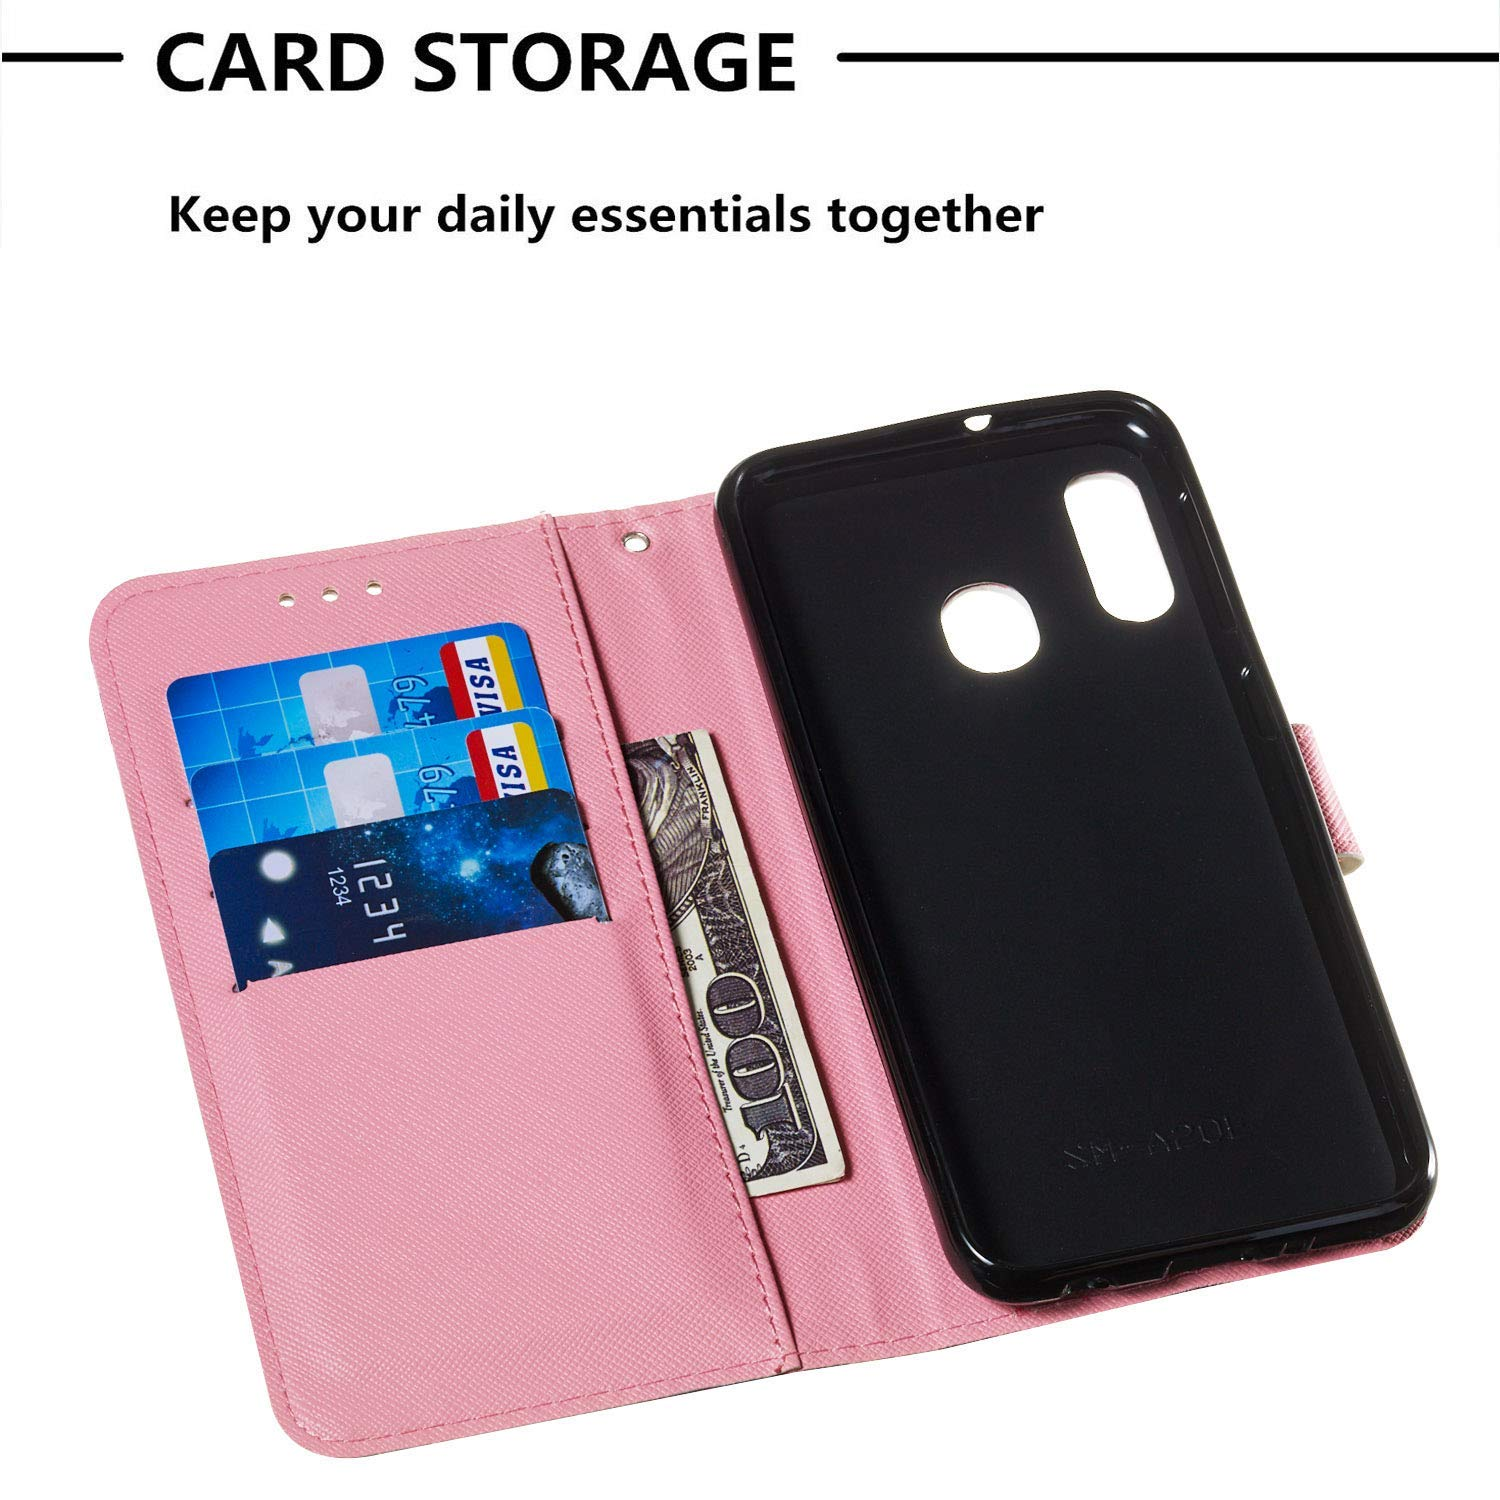 Wiitop Compatible with LG Stylo 4 Case,Q Stylus Crystal 3D PU Leather Wallet Heavy Duty Full Body Protective Phone Cover Credit Card Slot Magnetic Closure Kickstand Accessories Cloud Ghost